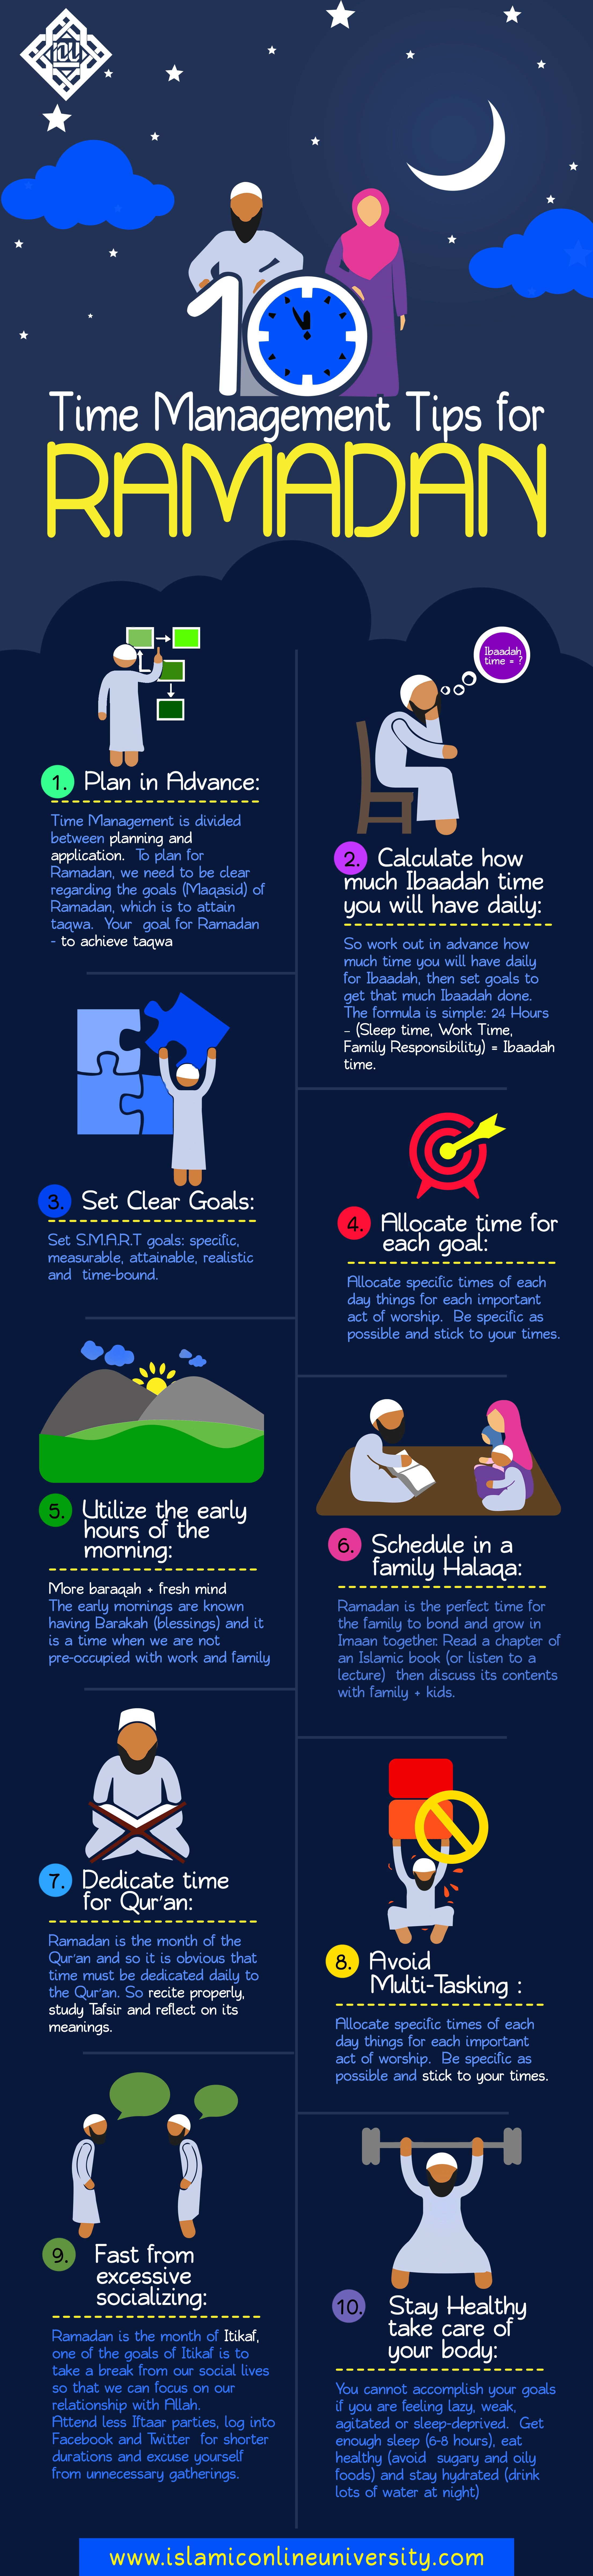 time management tips for ramadan ramadan happy eid mubarak 2015 ramadan